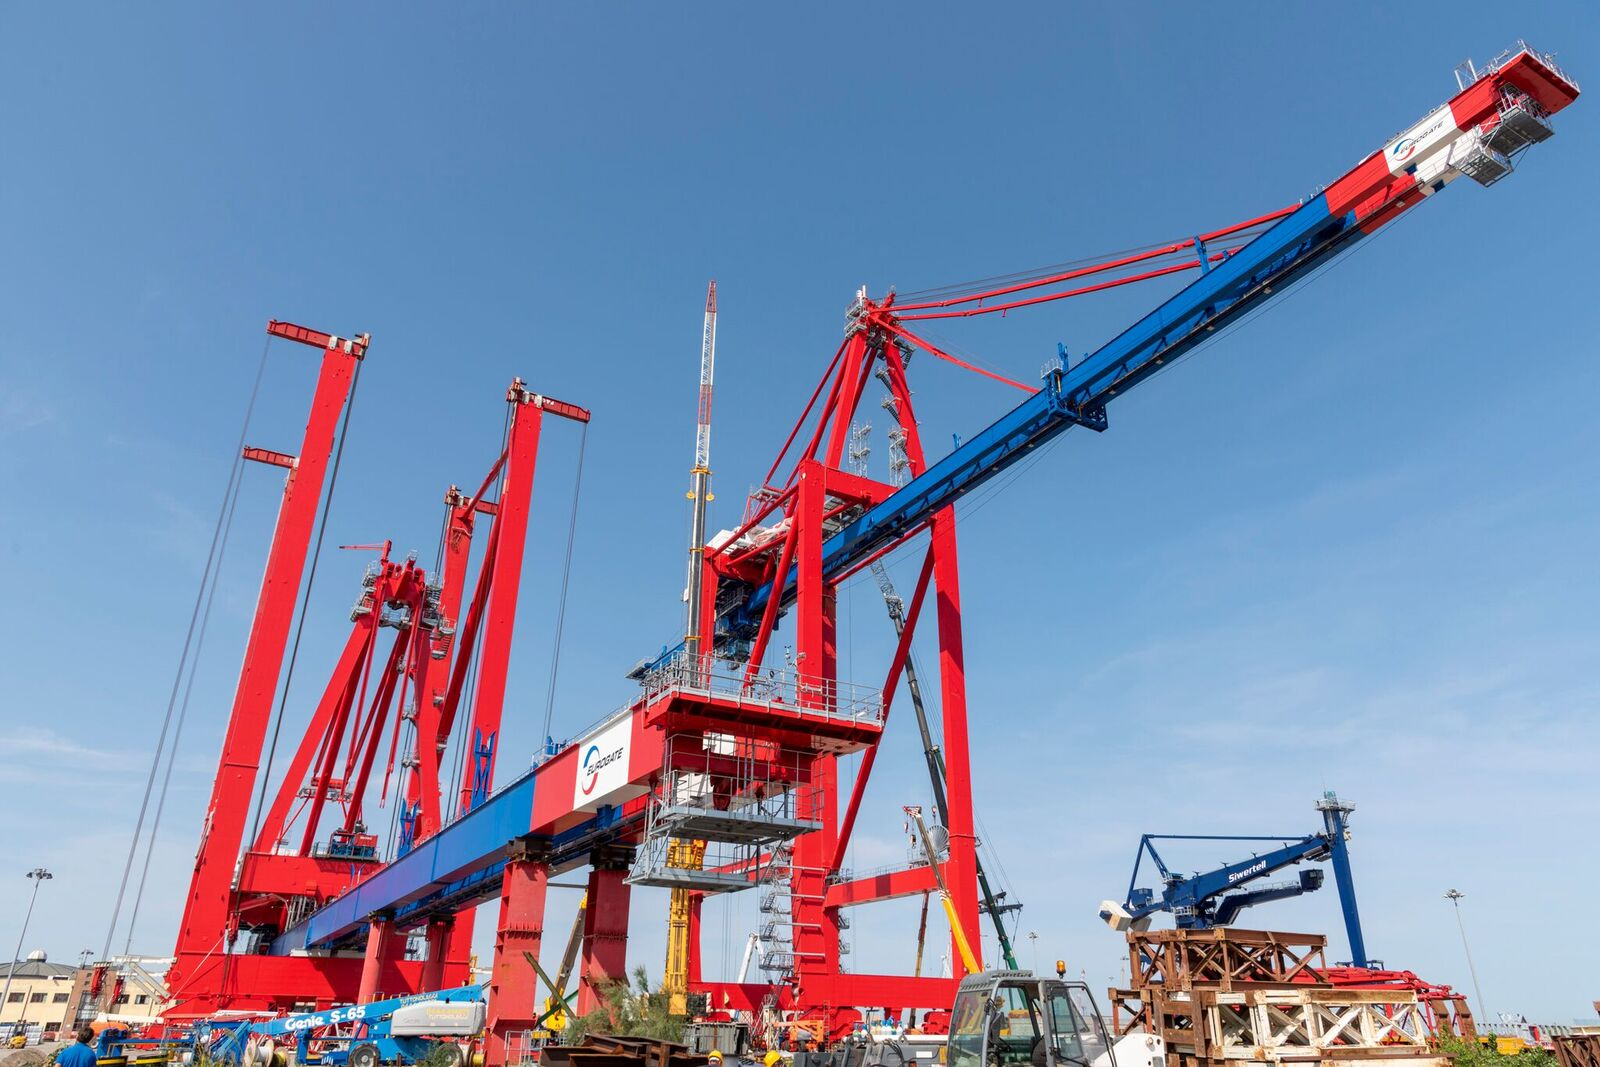 The 23-row across cranes, with a 52.5m lift height, under assmebly in Chioggia